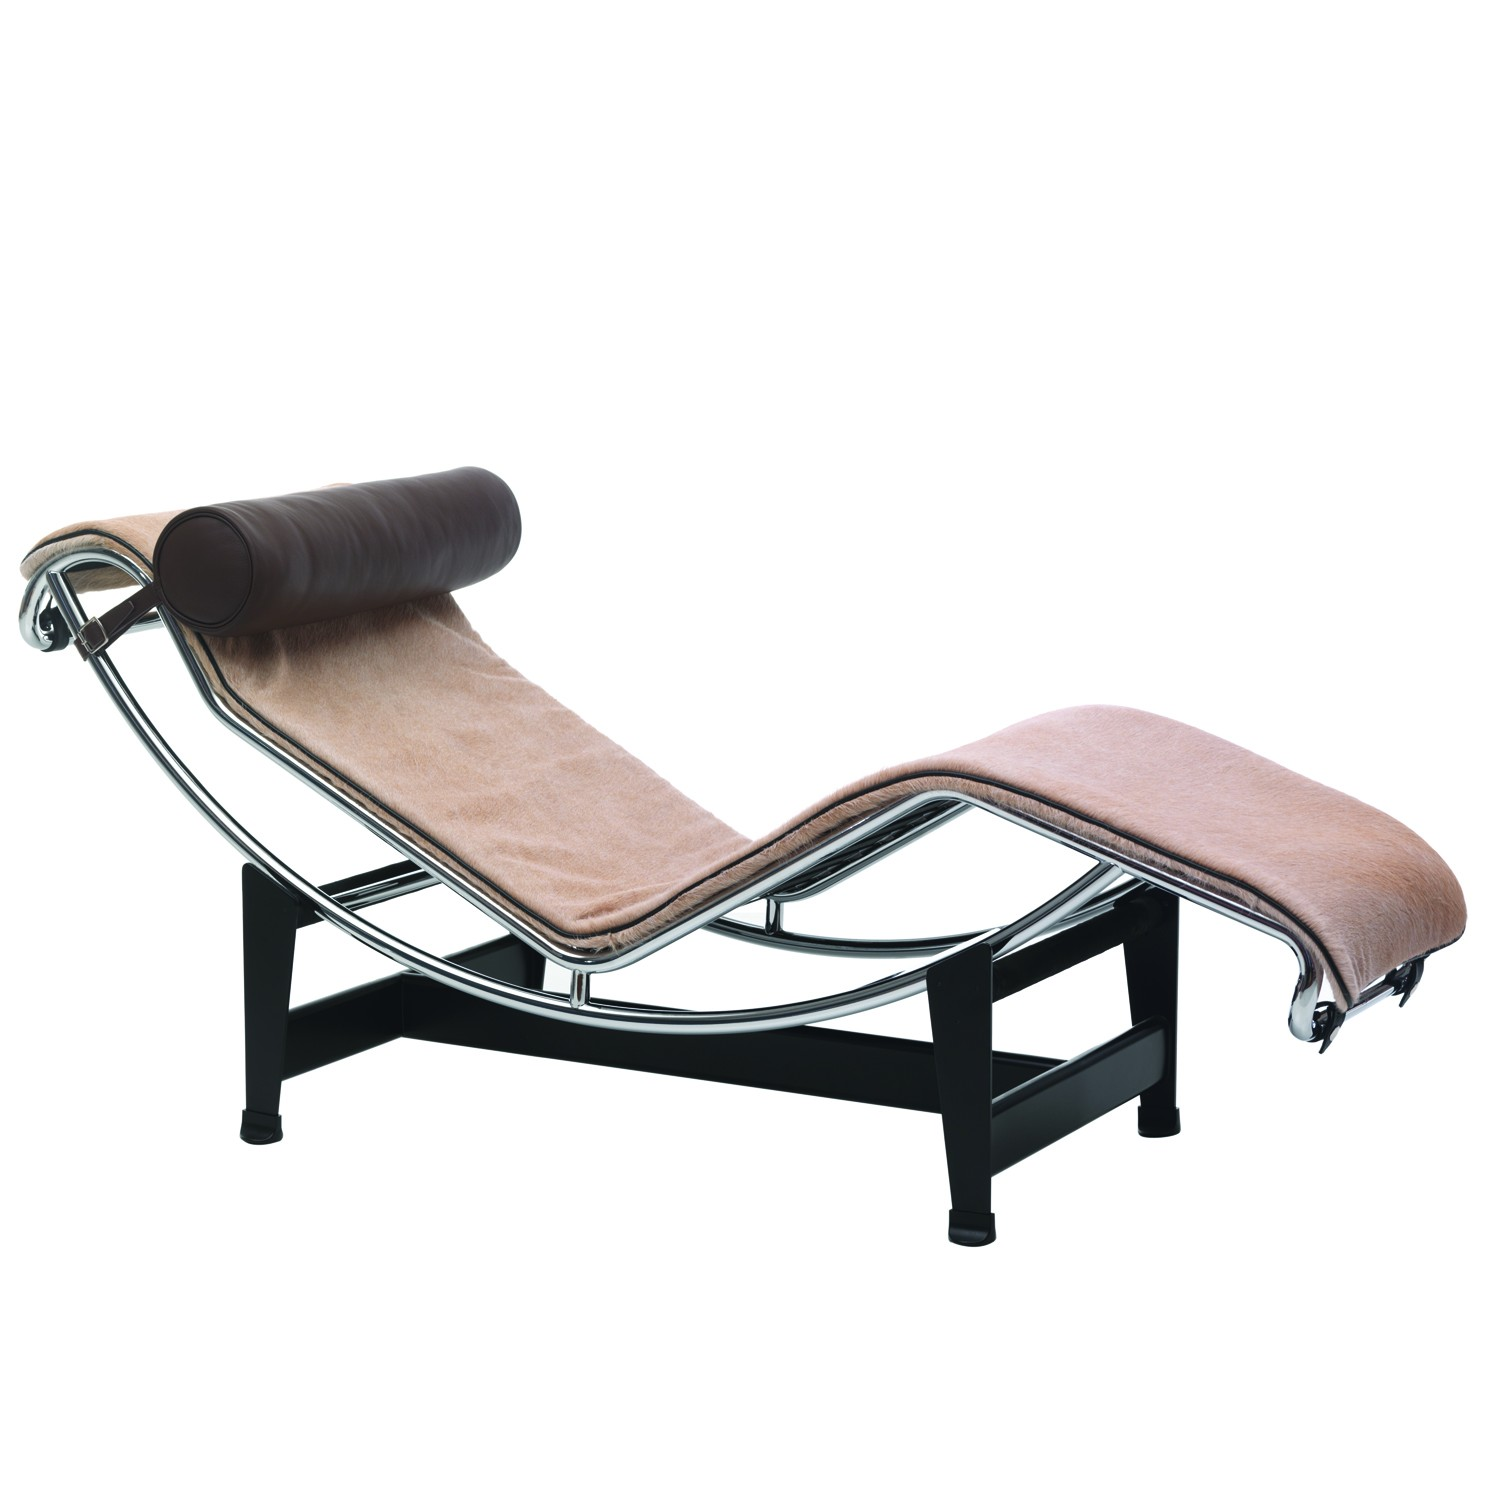 Le corbusier lives on apres furniture newsapres for Chaise longue de le corbusier